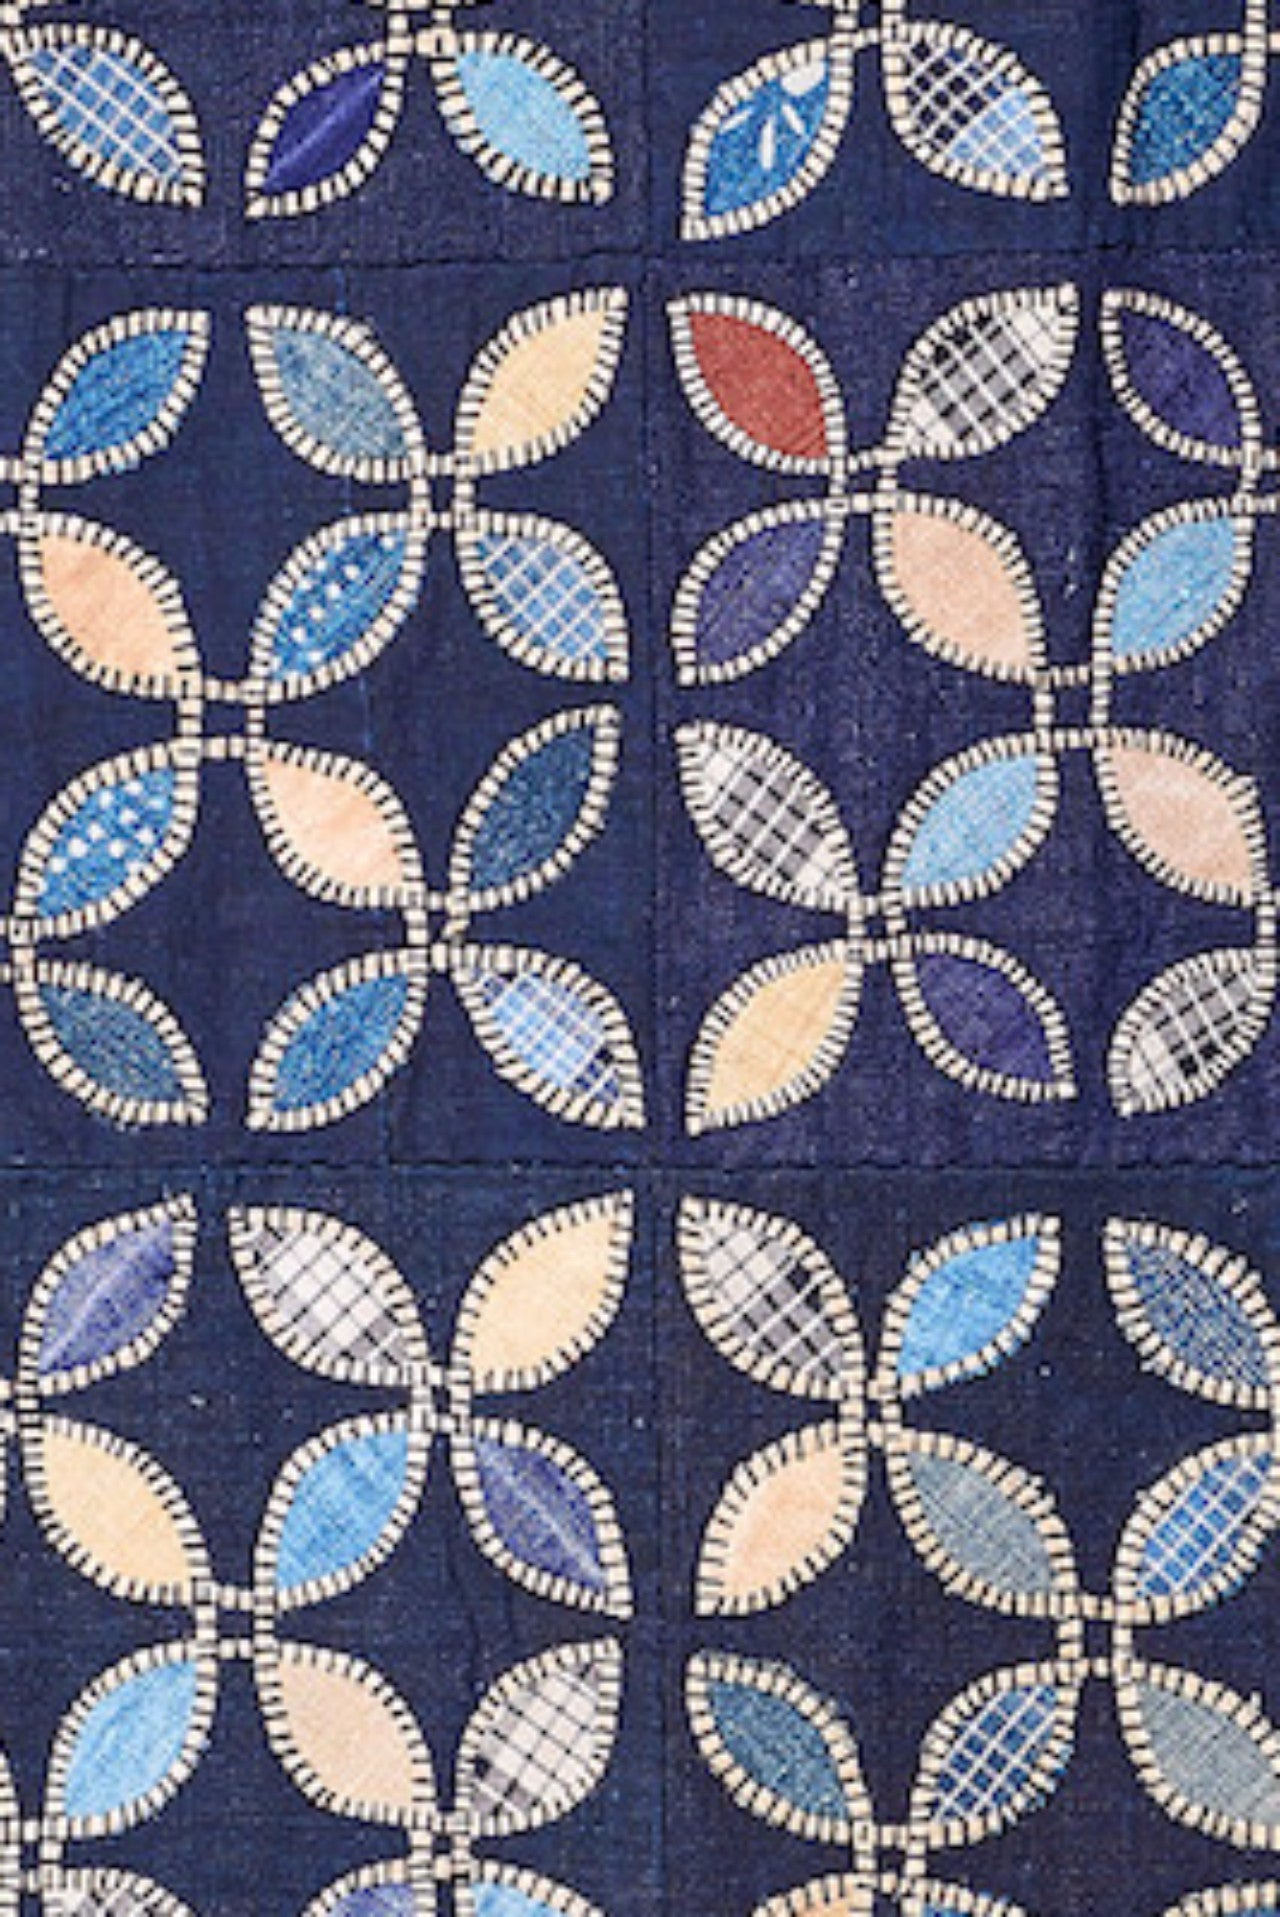 Authentic Hand Applique and Embroidered Indigo